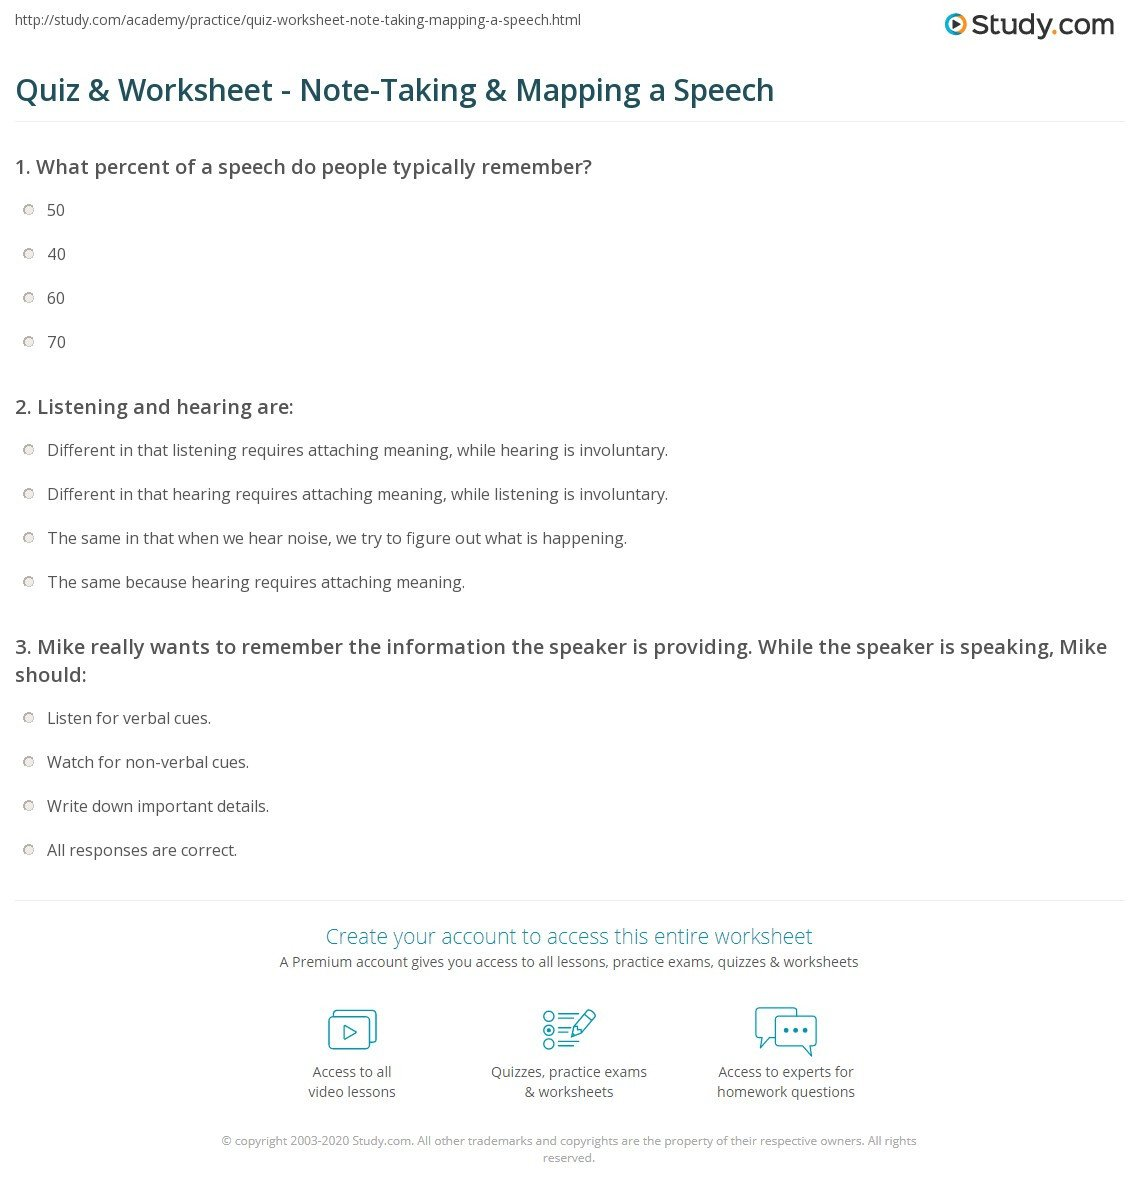 quiz worksheet note taking mapping a speech